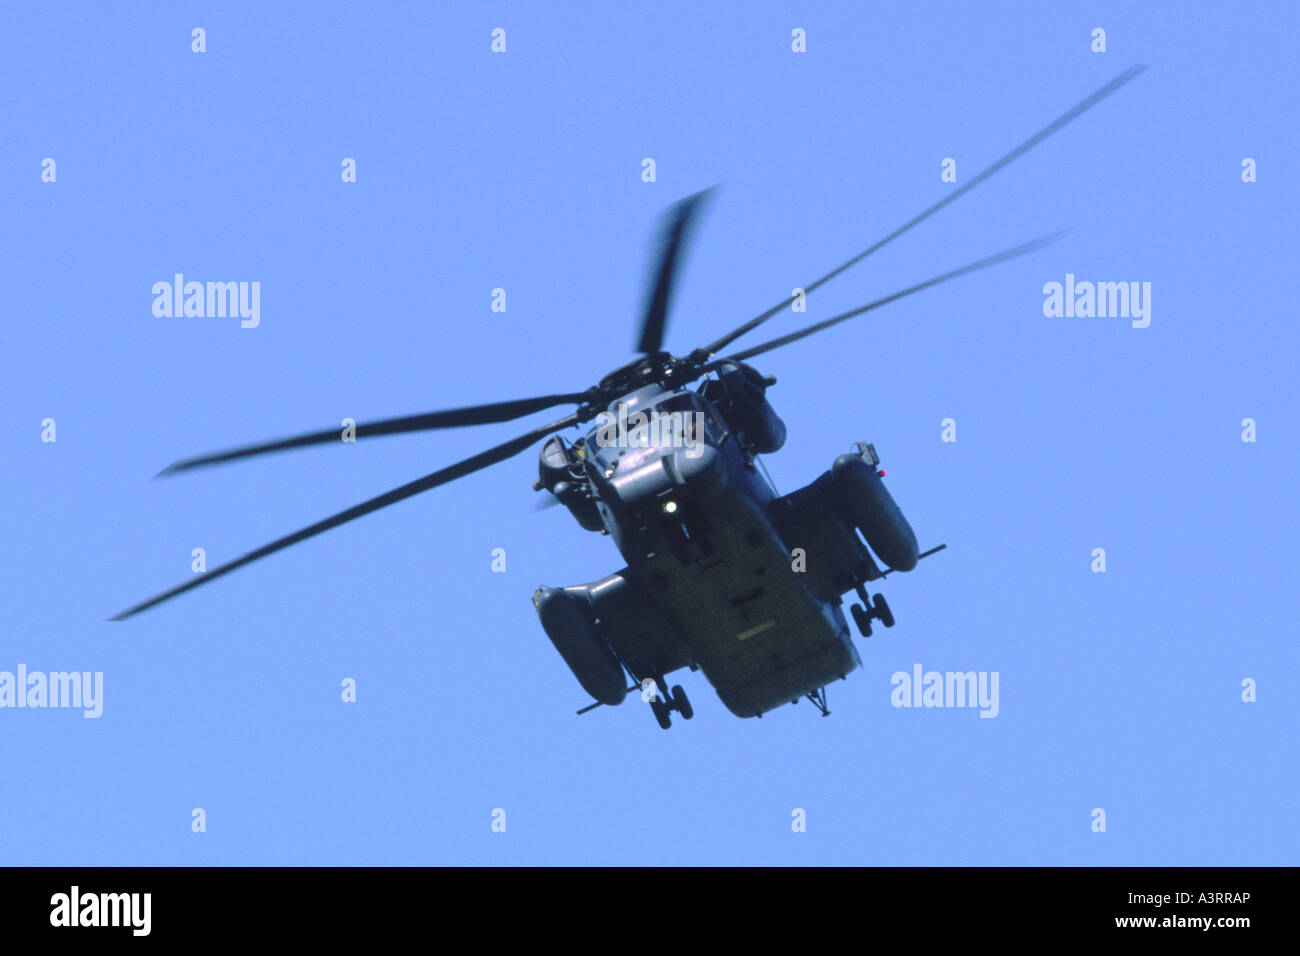 Sikorsky MH-53M Pave Low III operated by 21 SOS, 352 SOG of the USAF Special Operations Command - Stock Image